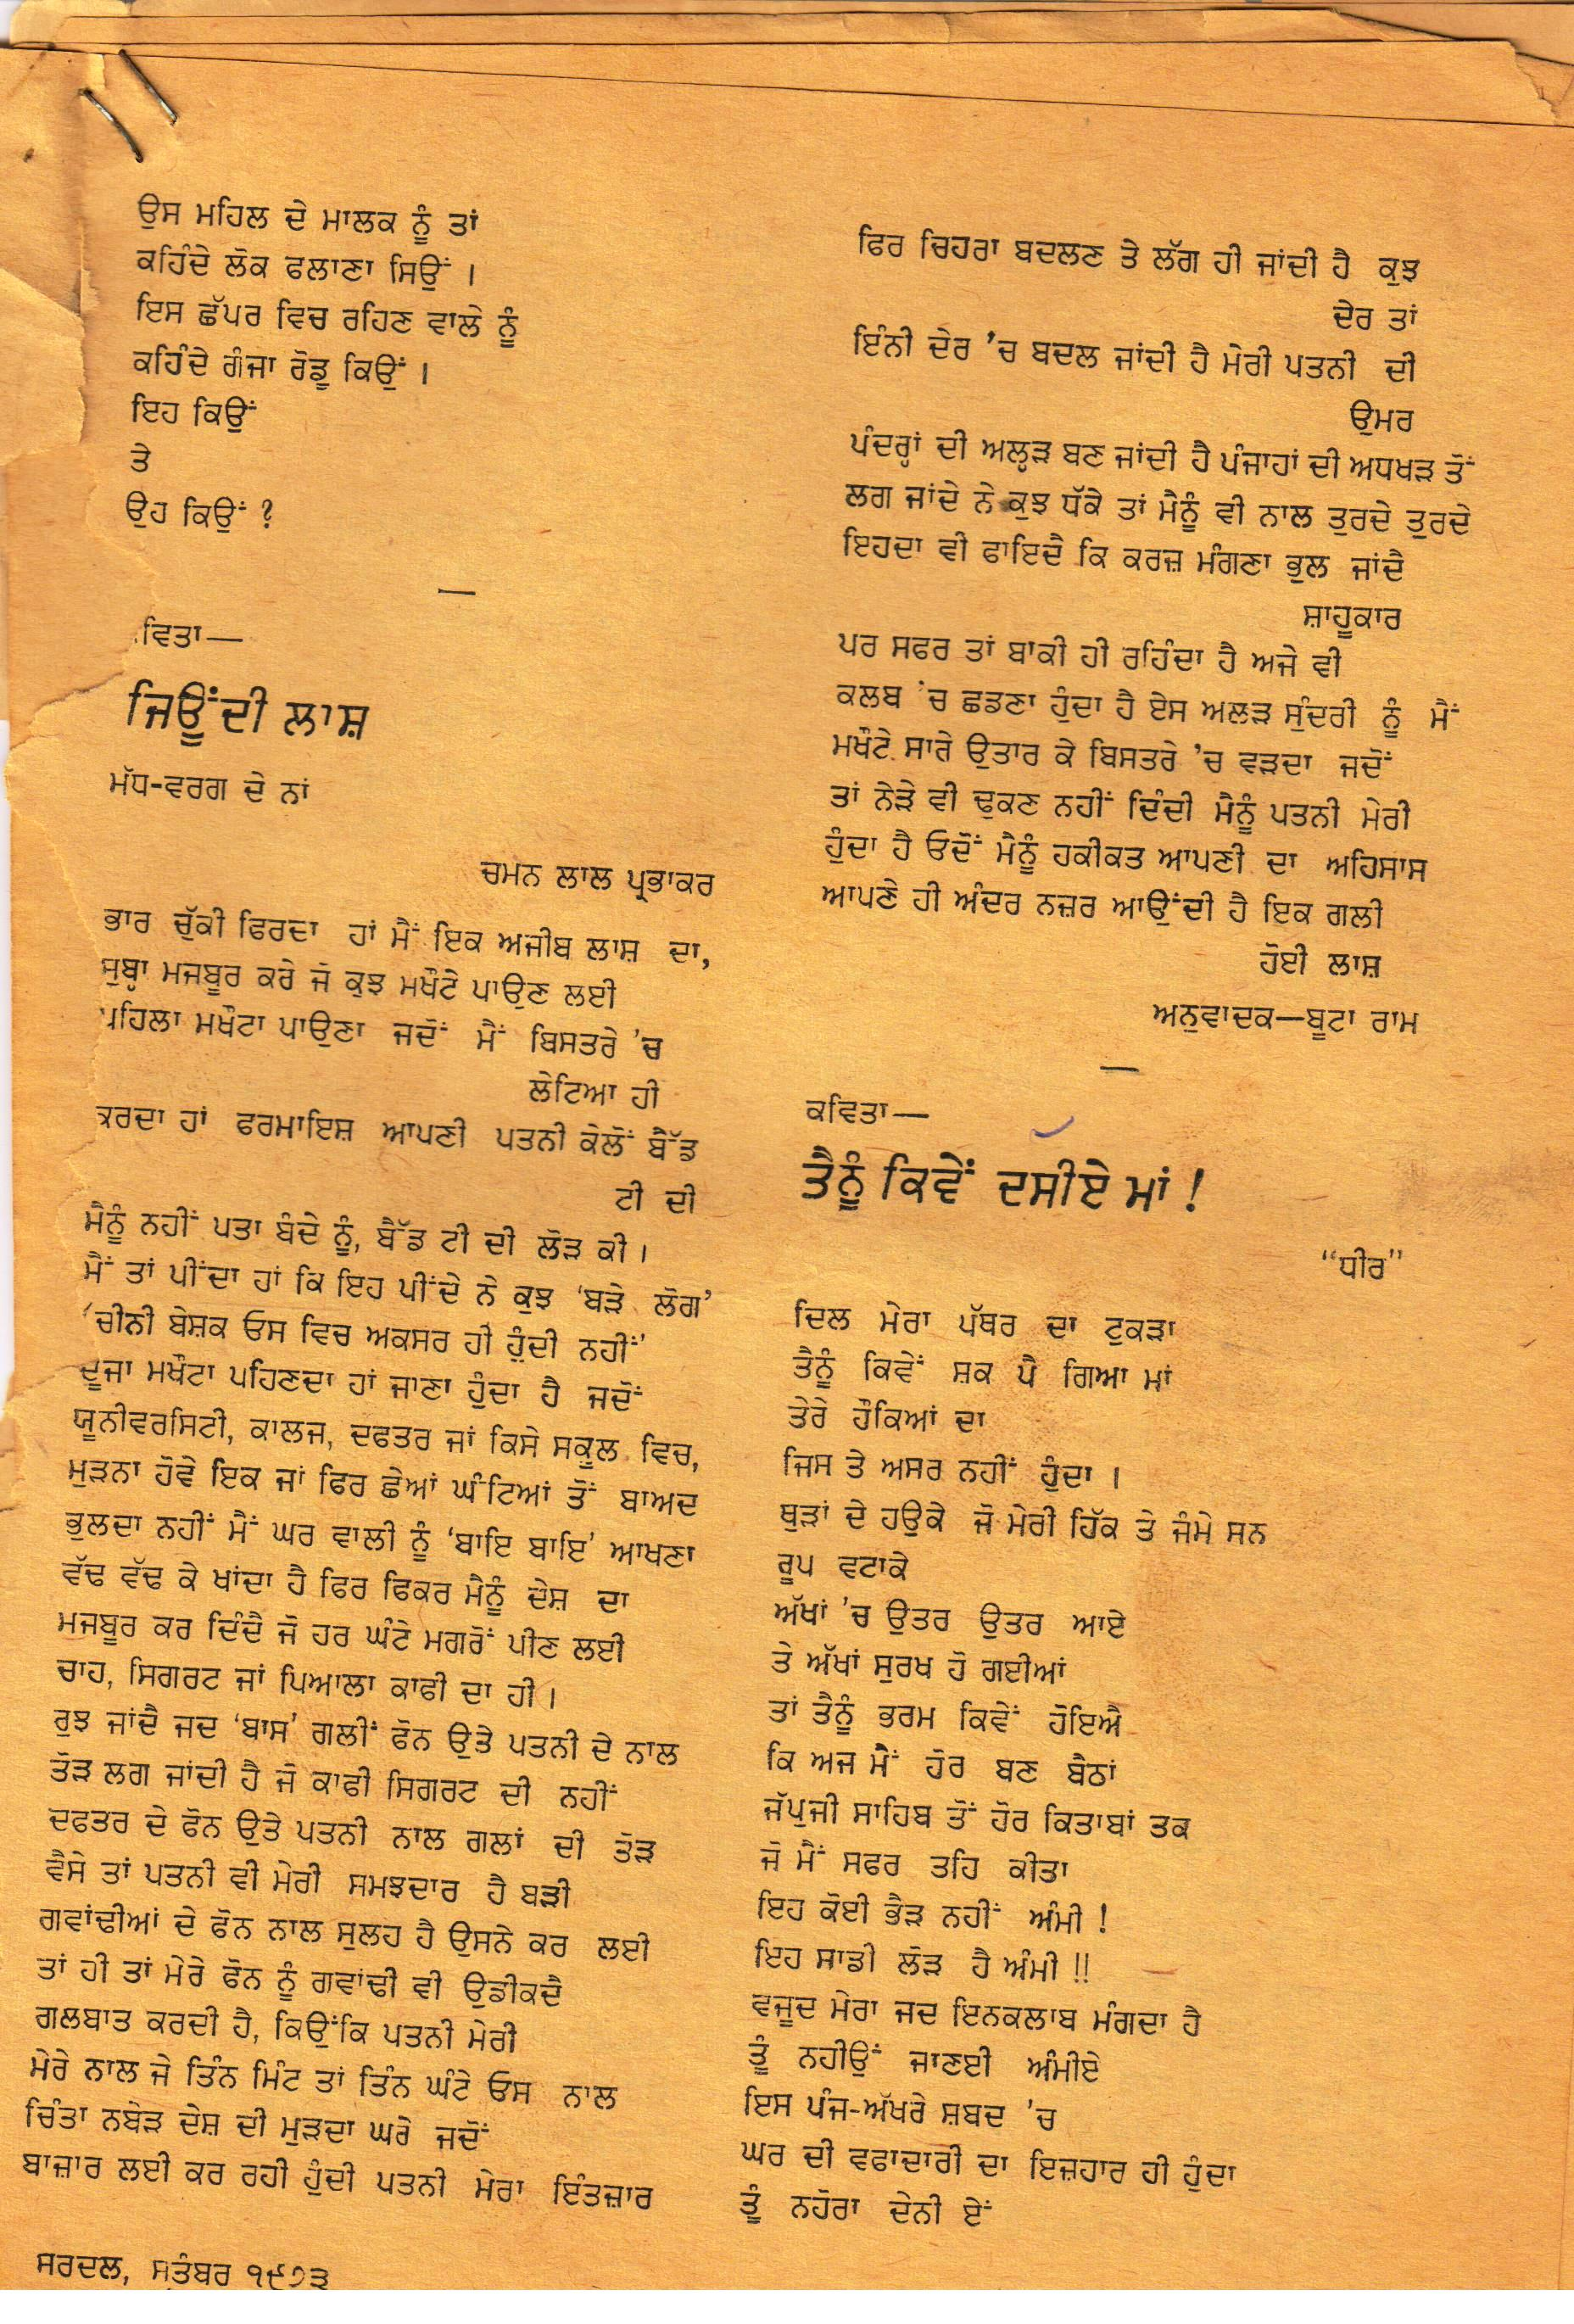 essay on bhagat singh in hindi font bhagat singh essay  essay on bhagat singh in hindi font